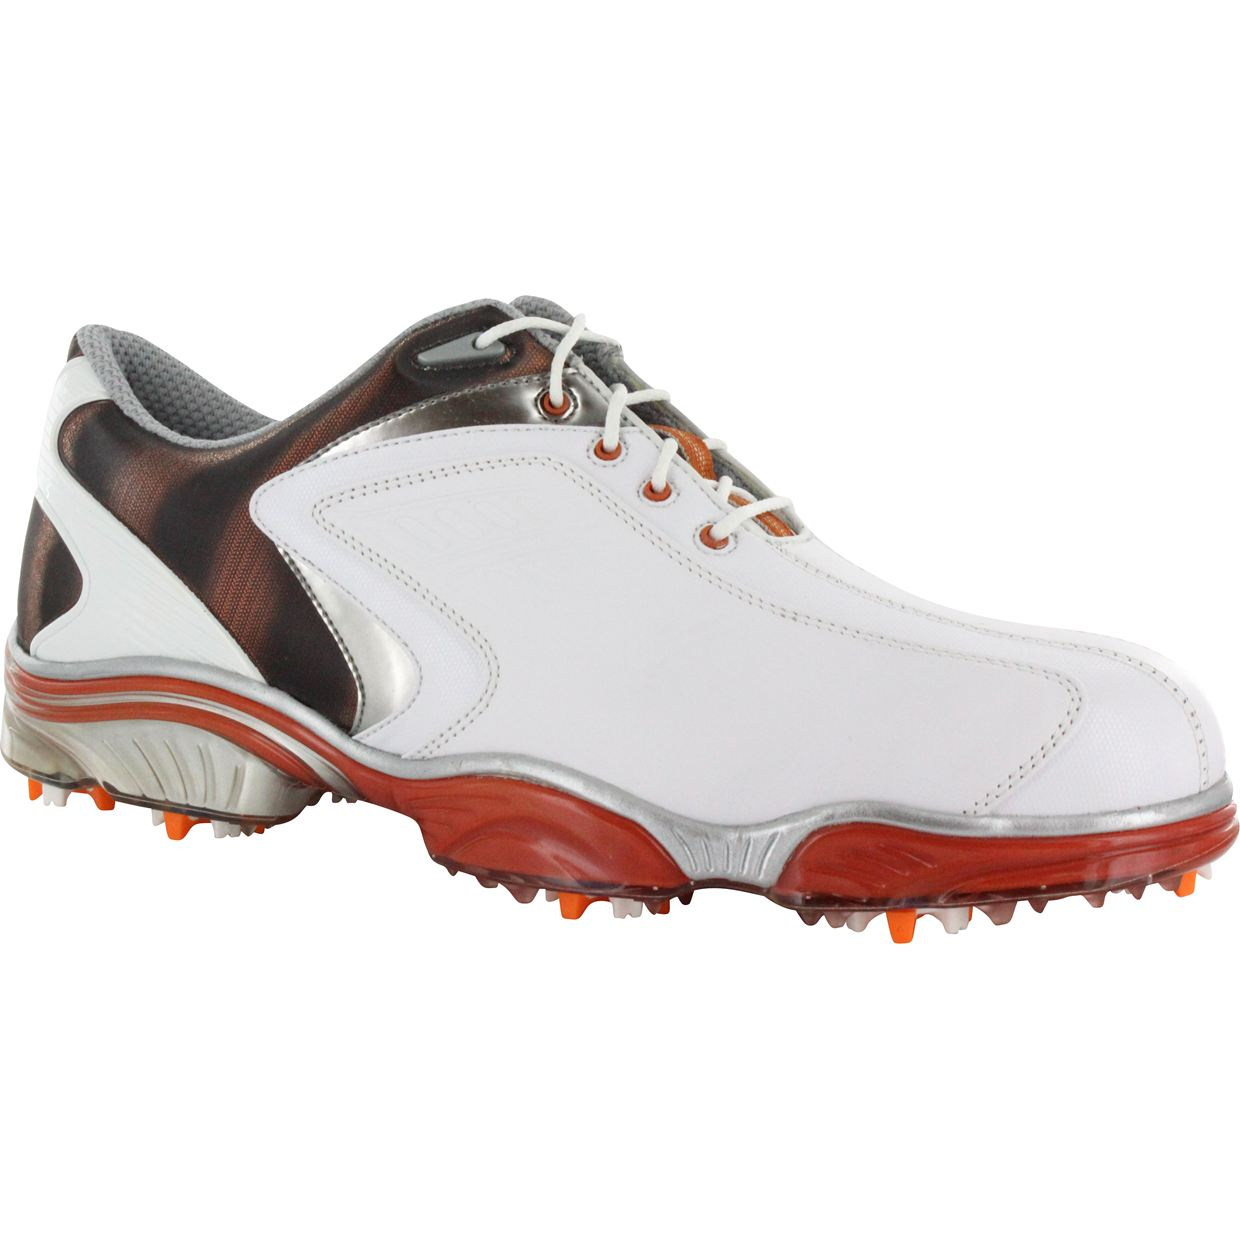 footjoy fj sport black smooth silver 11 medium golf shoes